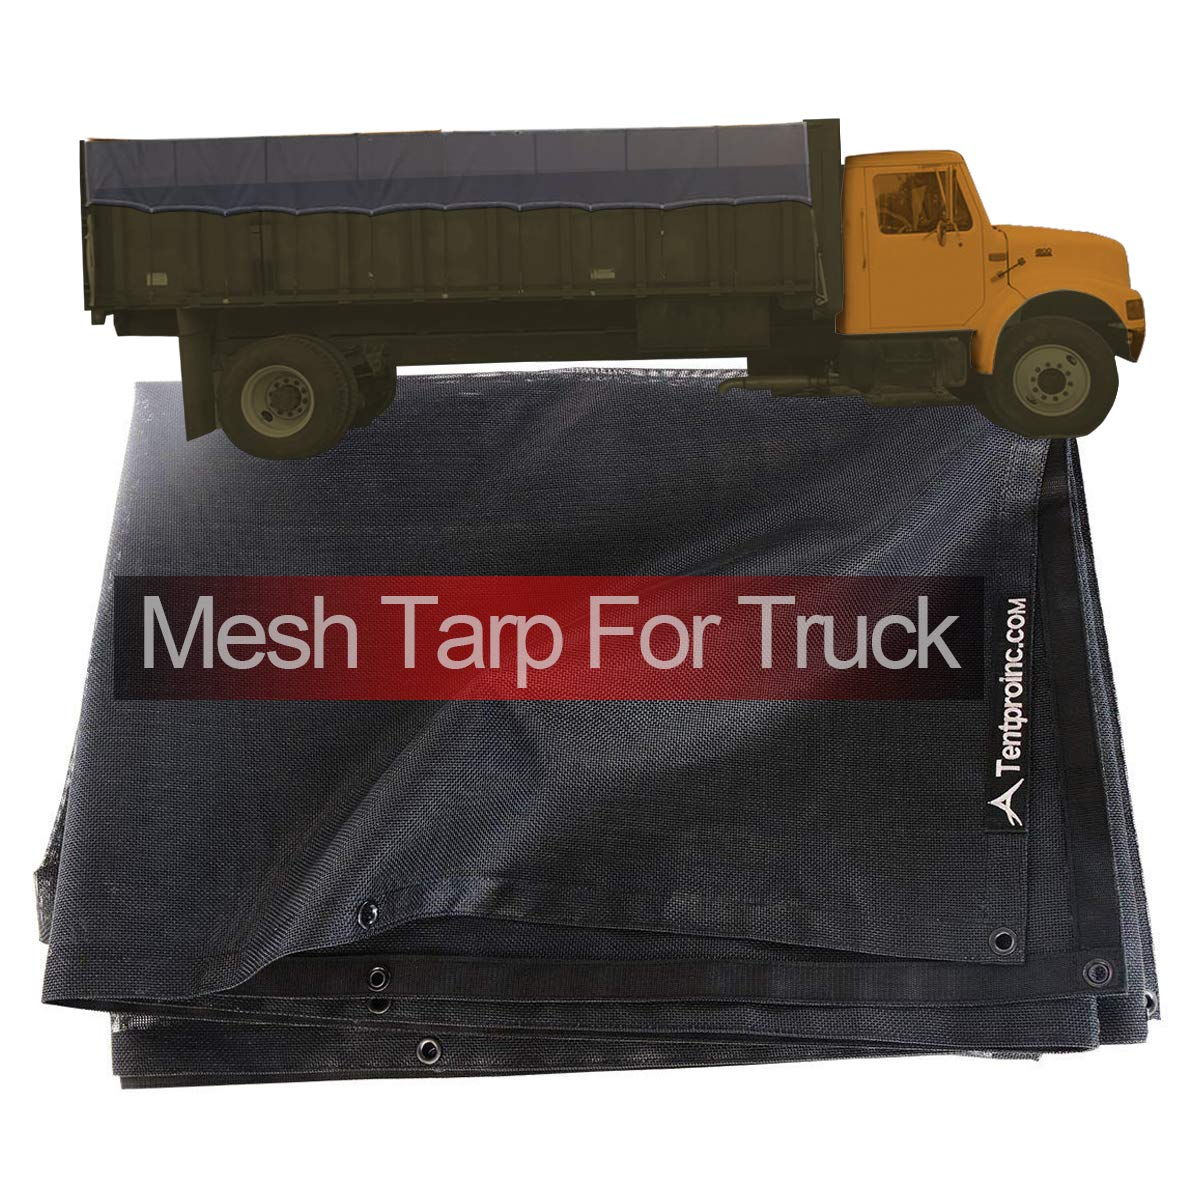 Tentproinc Truck Mesh Tarp 9' X 12' Black Heavy Duty Cover Reinforced Double Needle Stitch Webbing Ripping and Tearing Stop, No Rust Thicker Brass Grommets - 3 Years Limited Warranty by Tentproinc (Image #1)